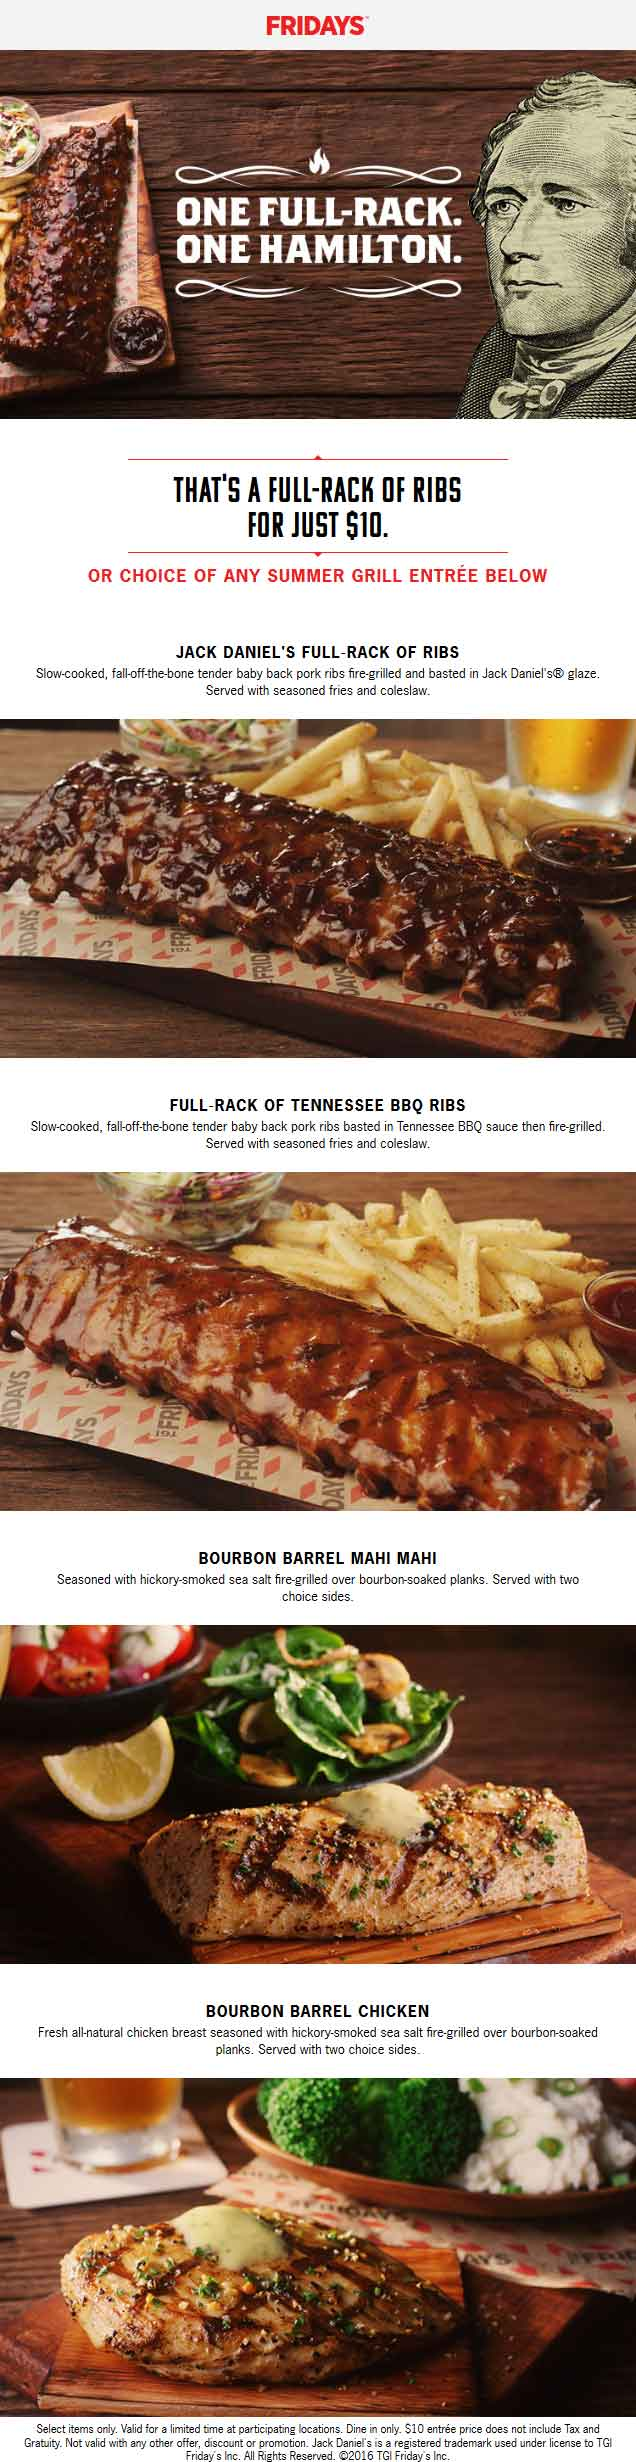 TGI Fridays Coupon June 2017 Full rack ribs for $10 & more at TGI Fridays